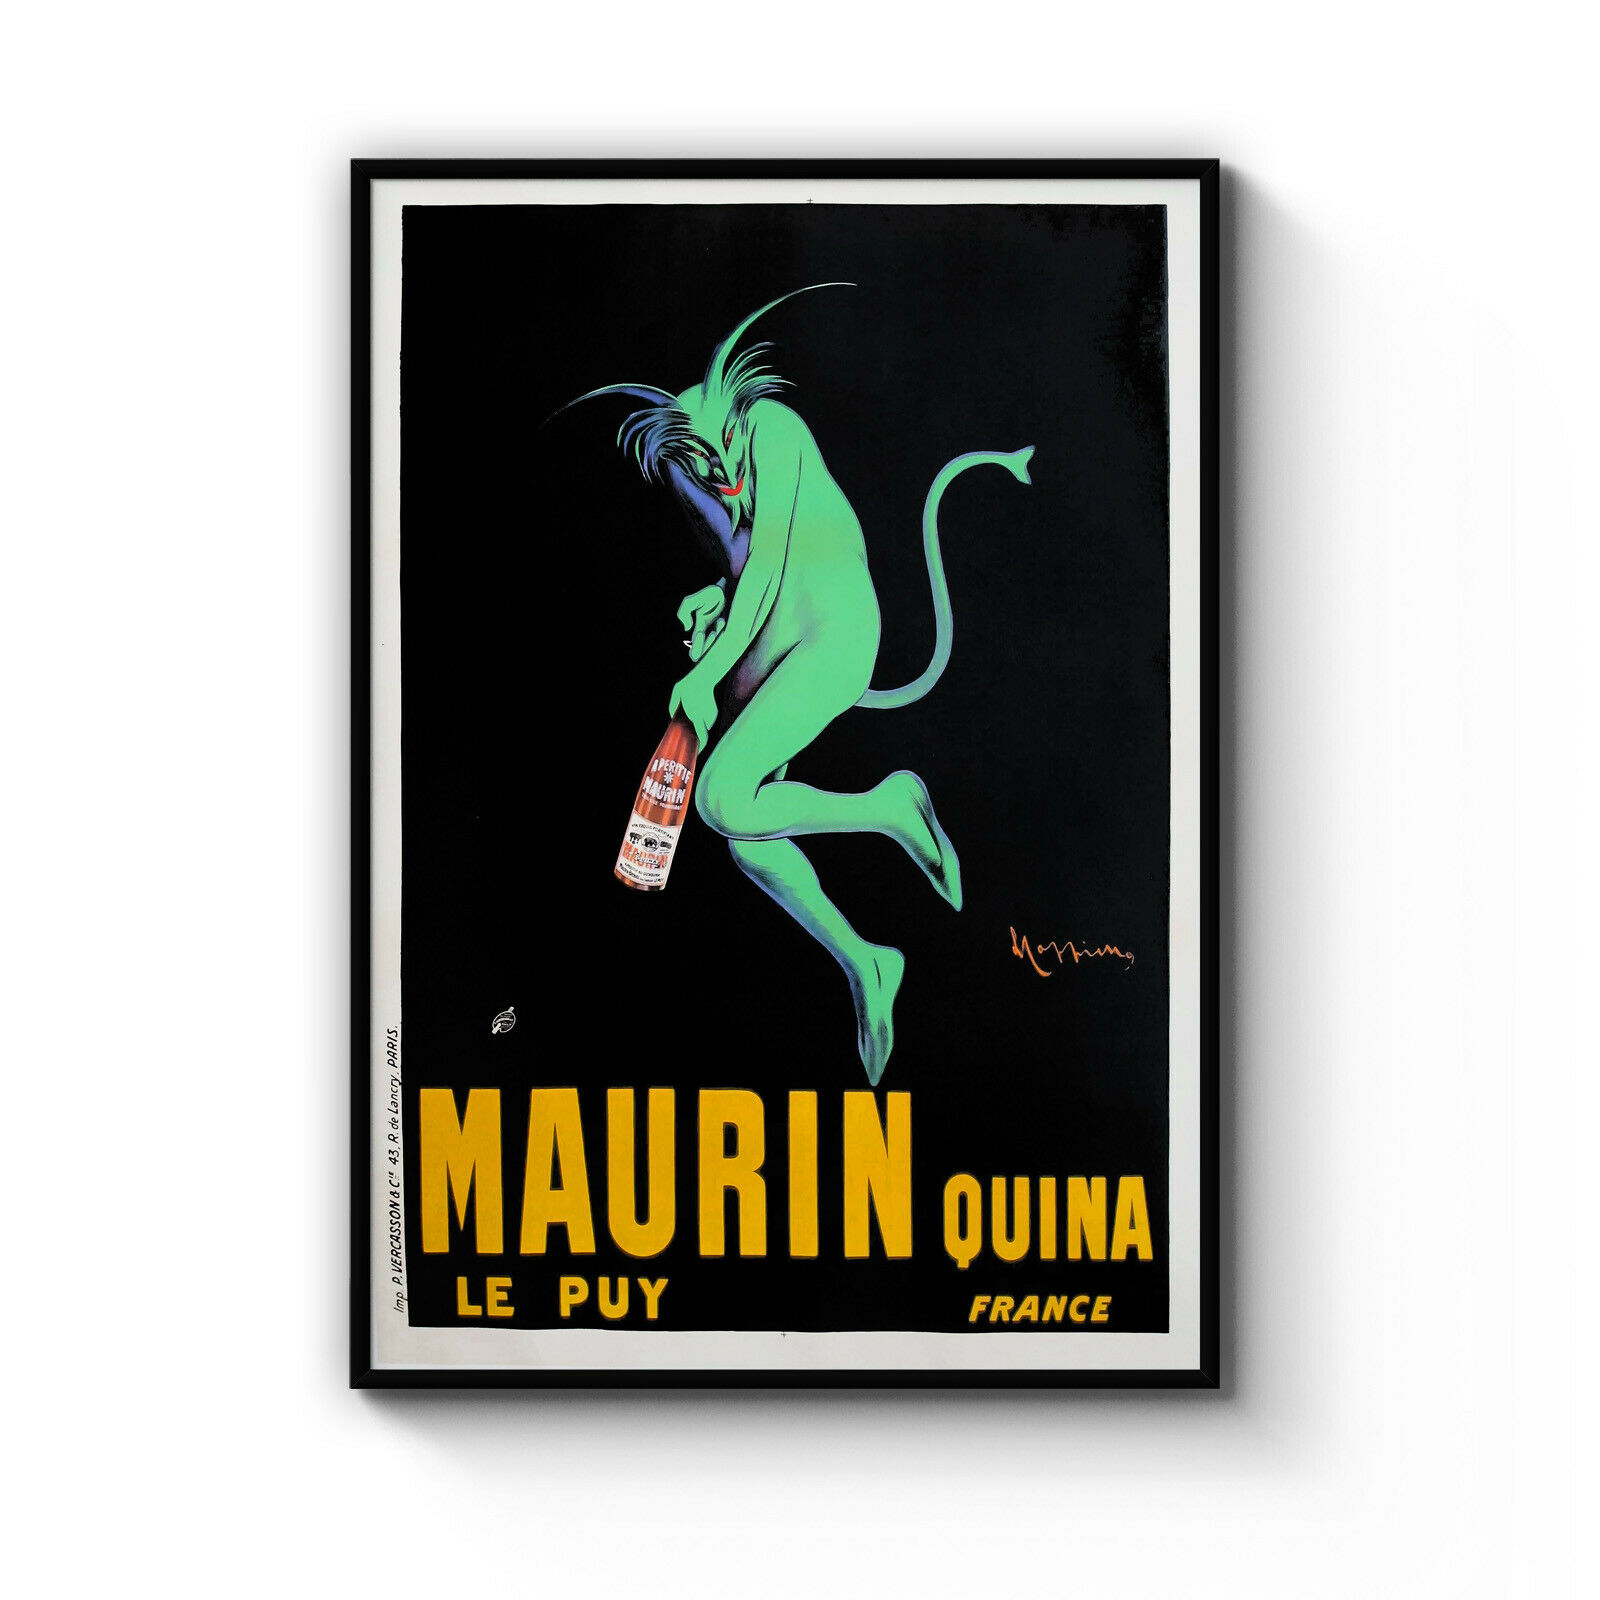 Vintage Maurin Quina Wine French Cafe Decor Art Poster Print  A4 - B1 Framed